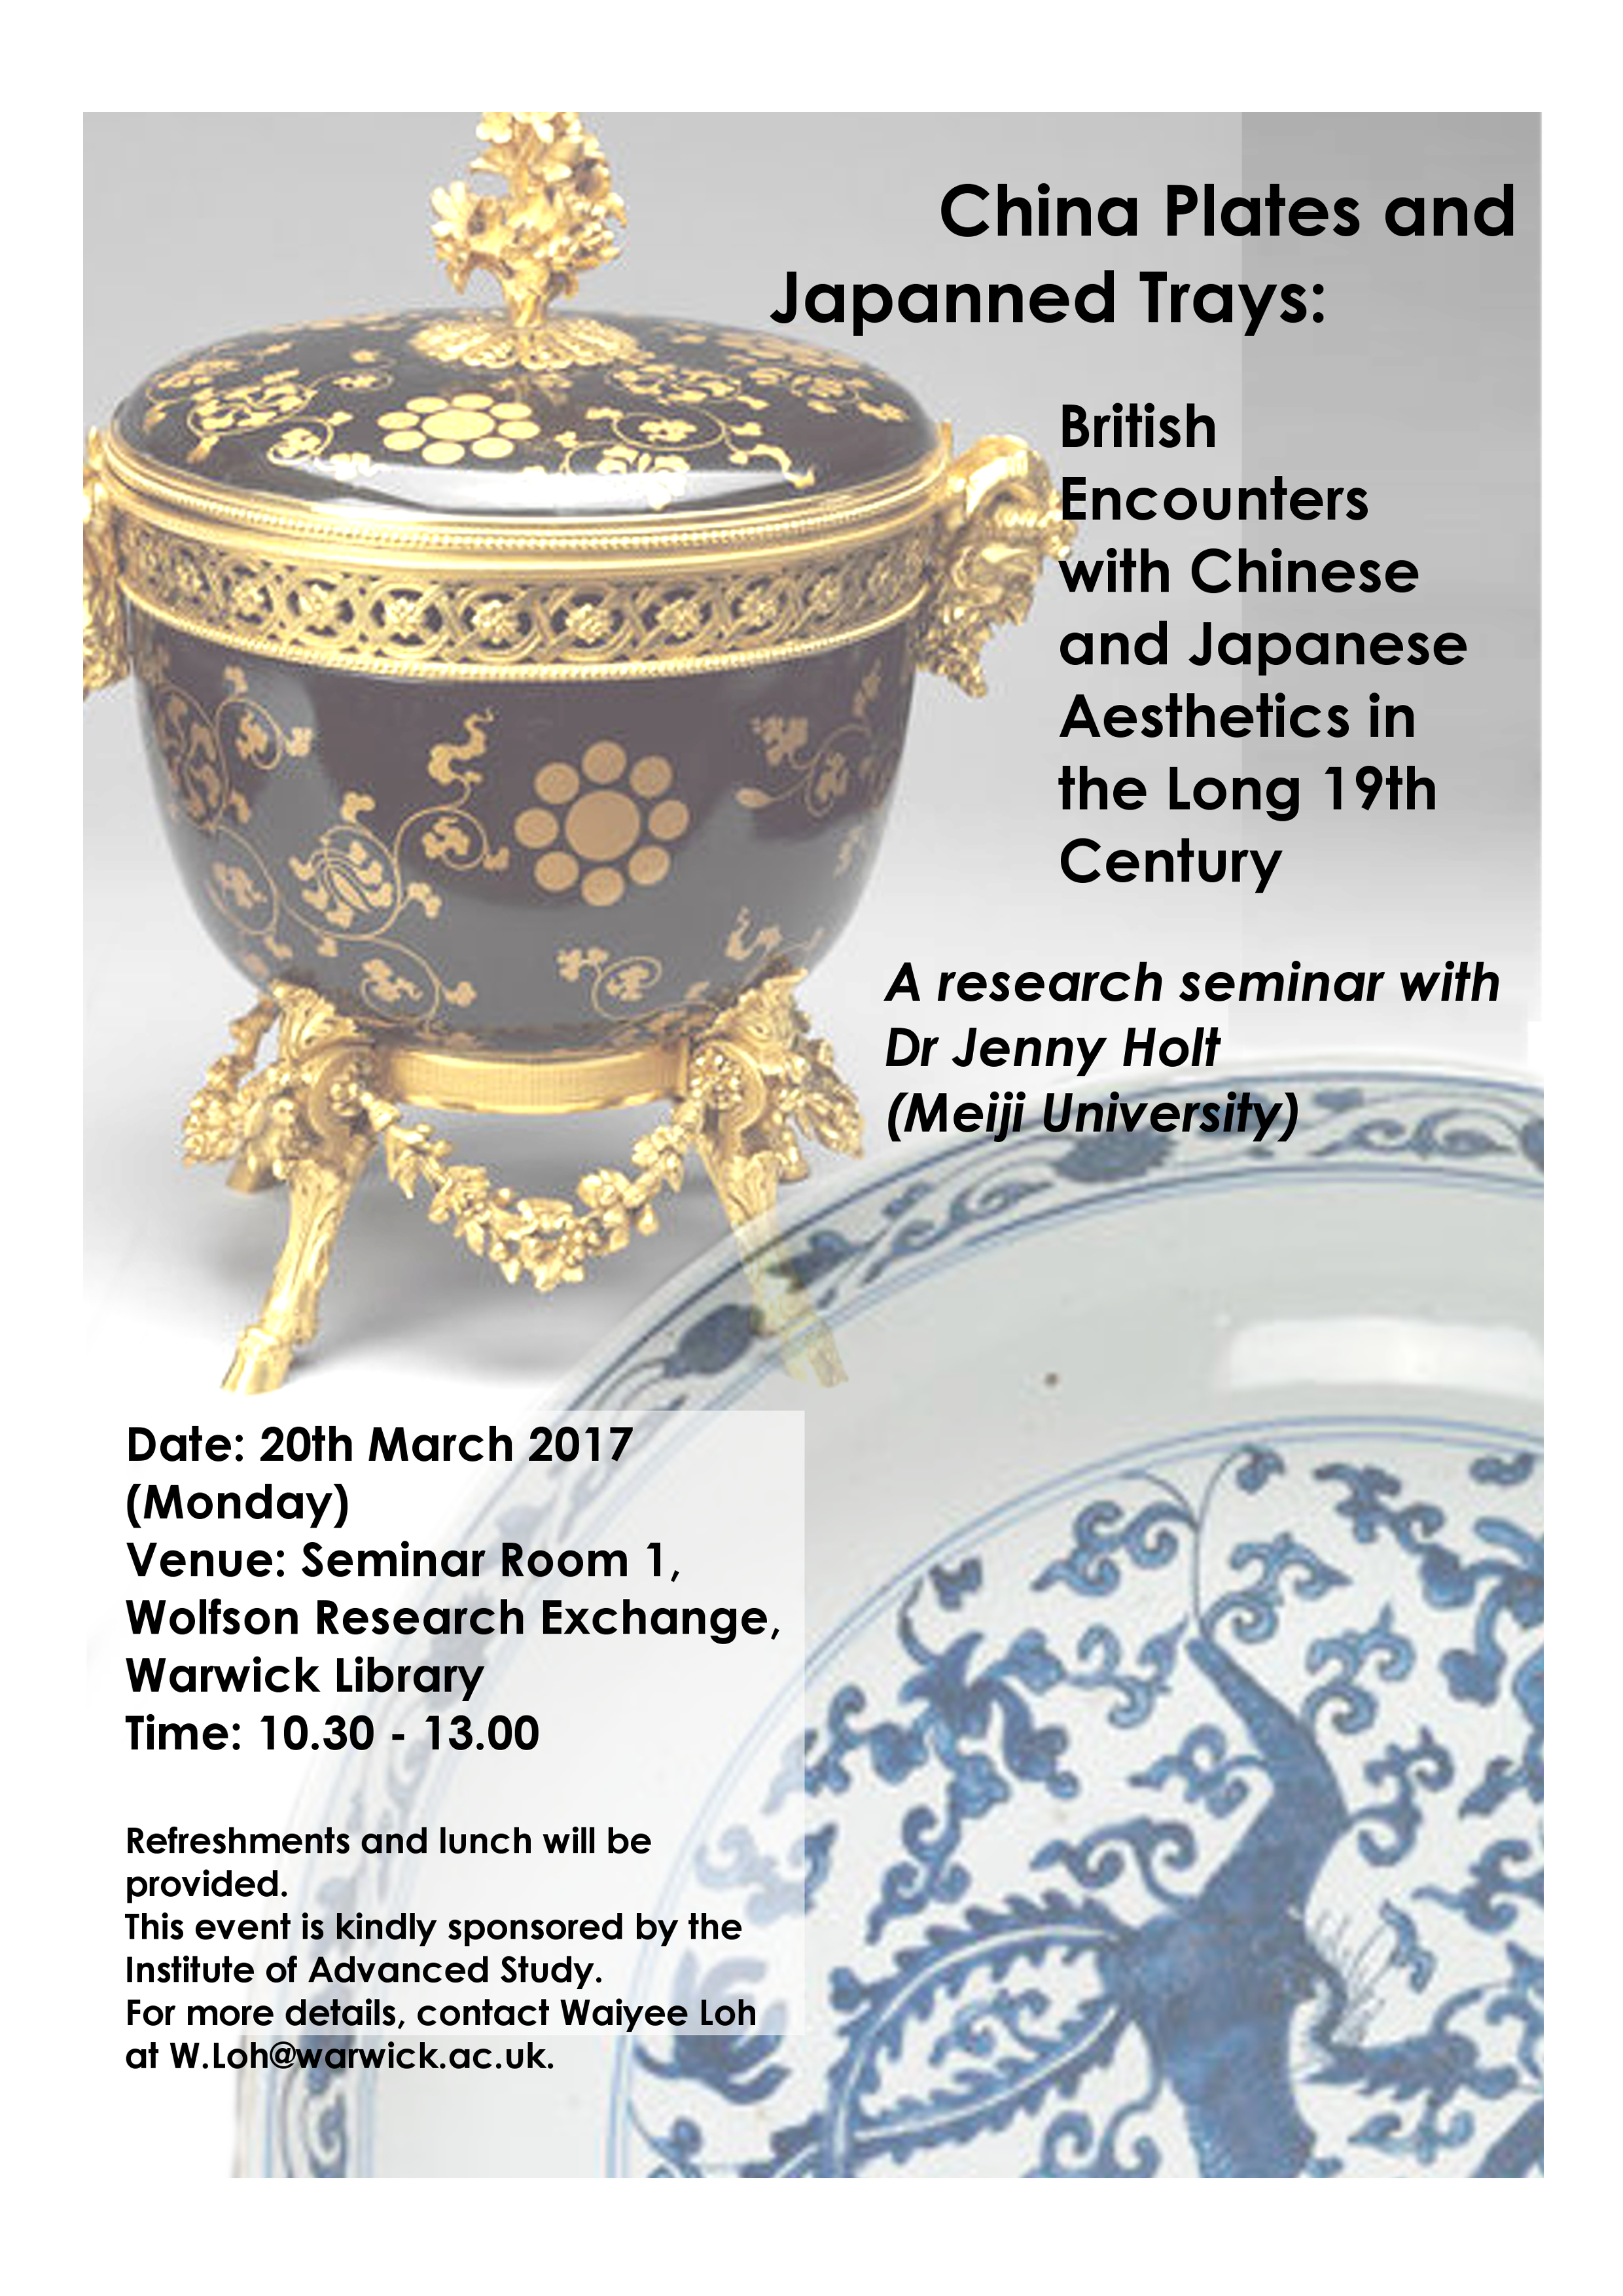 China Plates and Japanned Trays: British Encounters with Chinese and  Japanese Aesthetics in the Long 19th Century